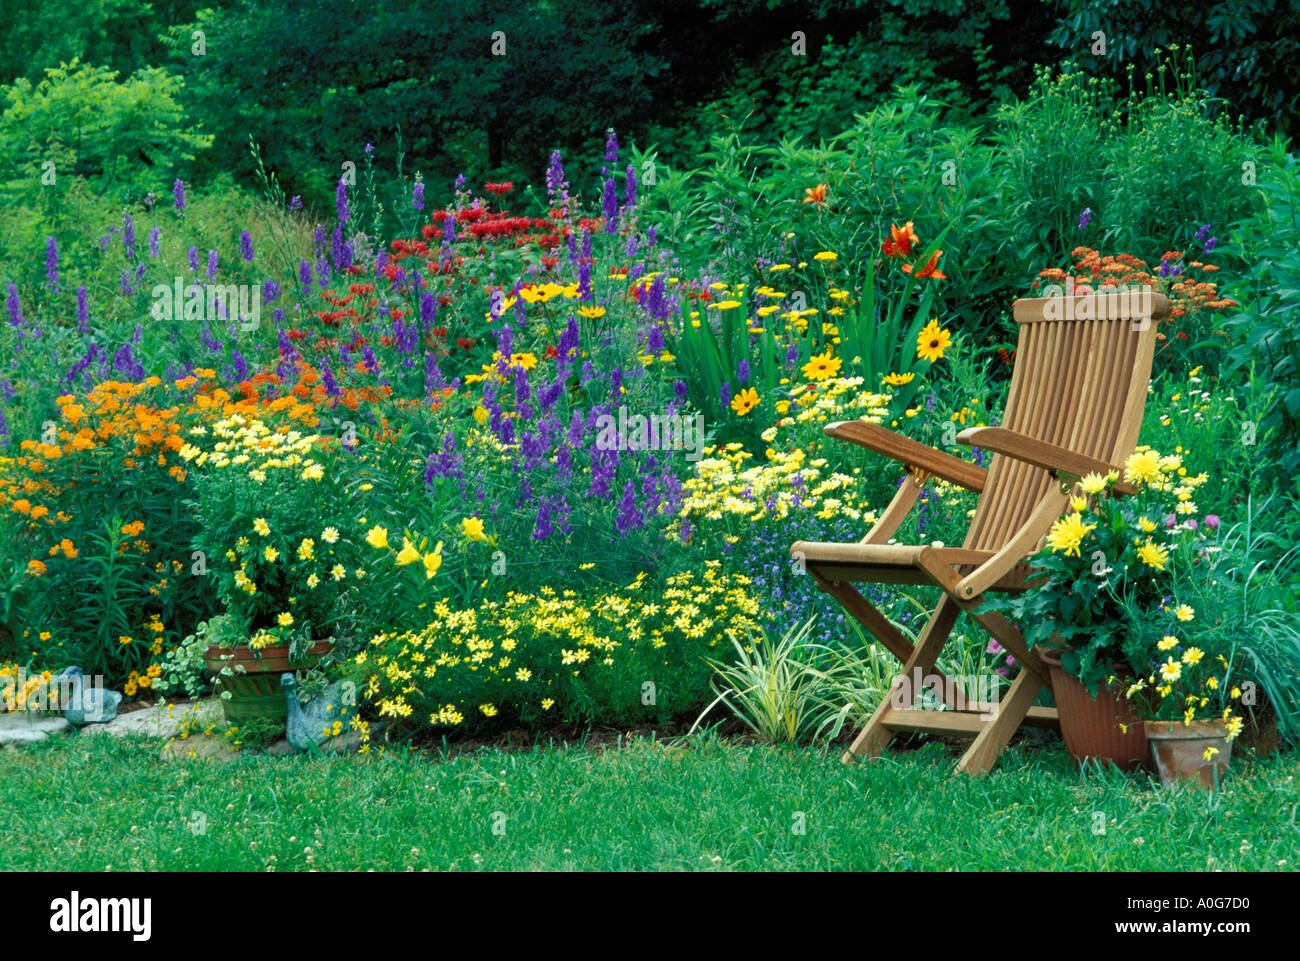 Wooden chair in colorful flower garden with annuals and perennials wooden chair in colorful flower garden with annuals and perennials missouri usa izmirmasajfo